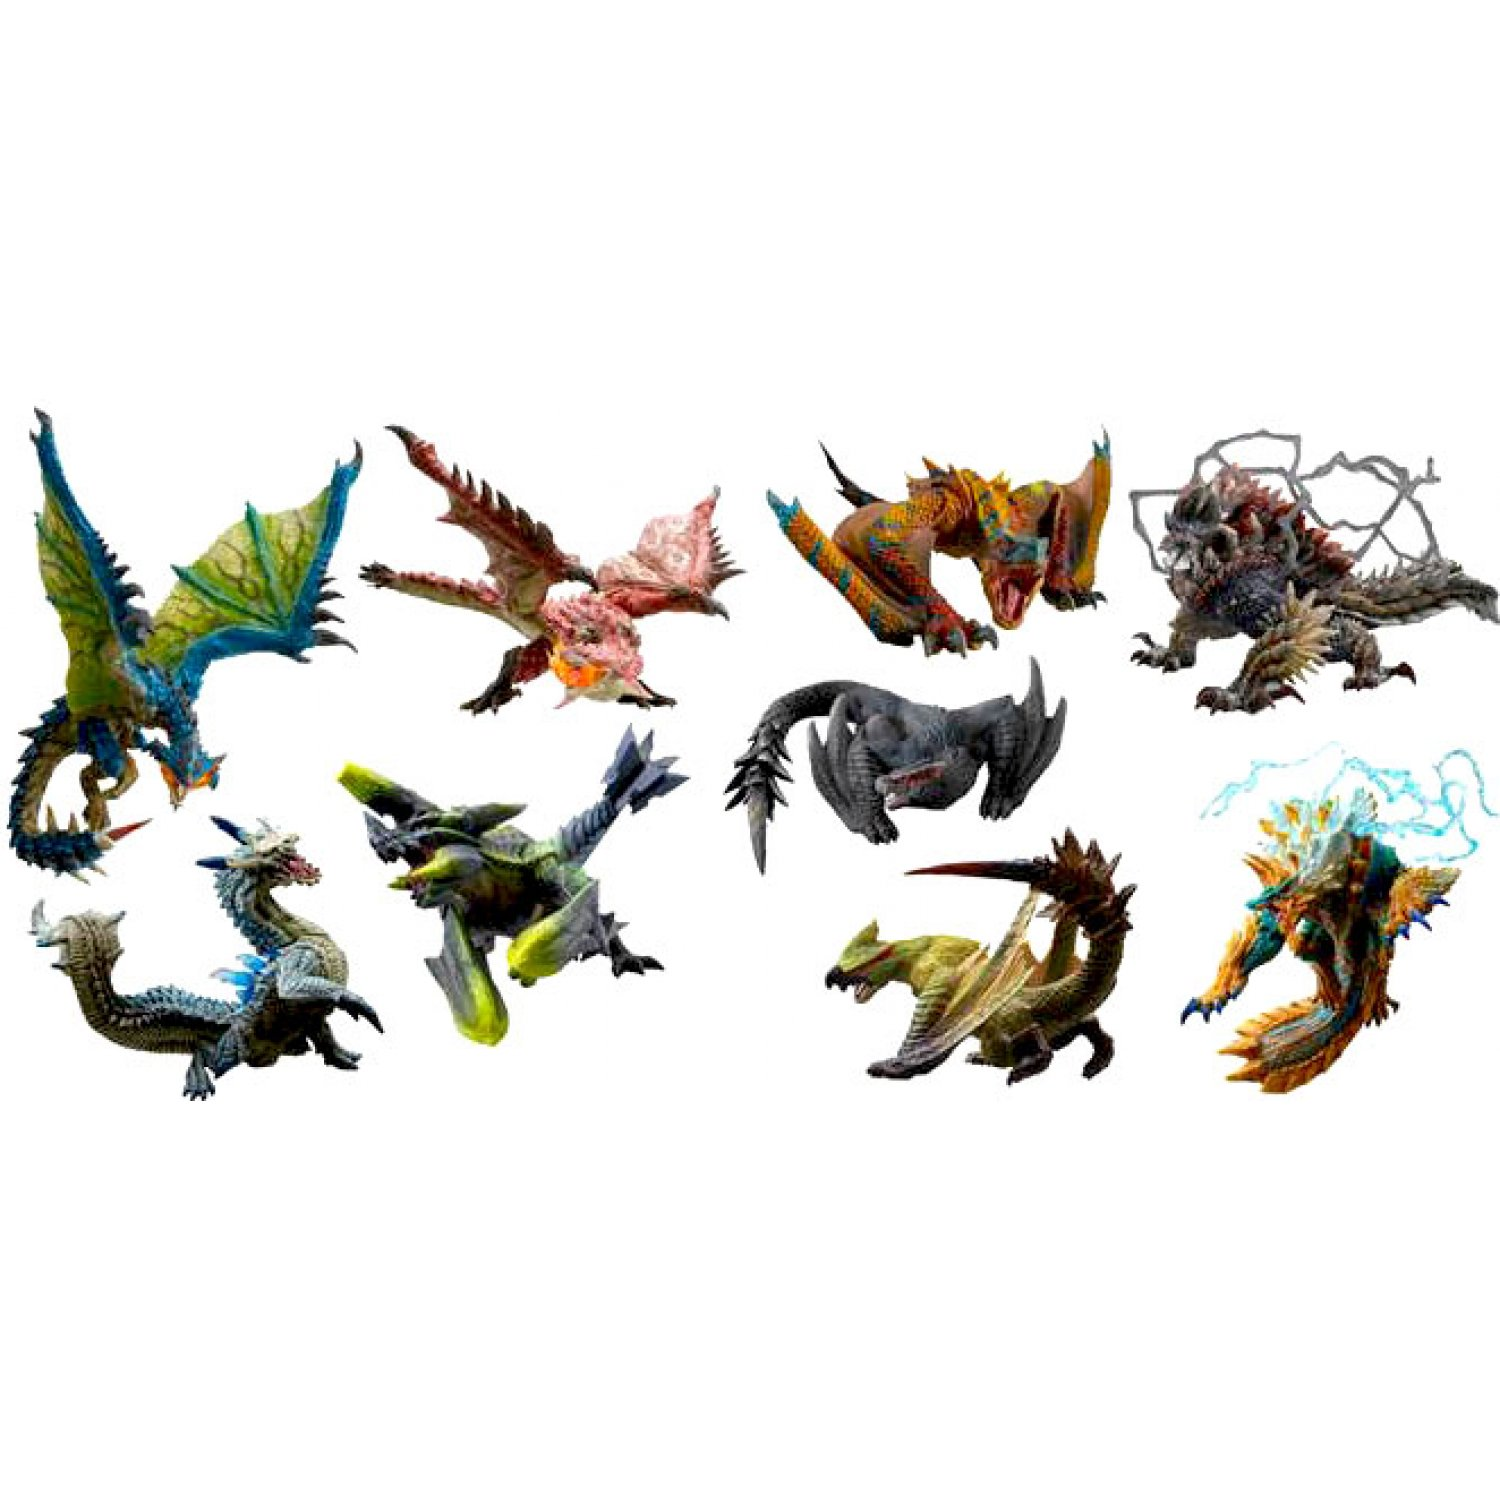 Capcom Figure Builder Standard Model Monster Hunter Anger Ver. Selection (Set of 9 pieces)